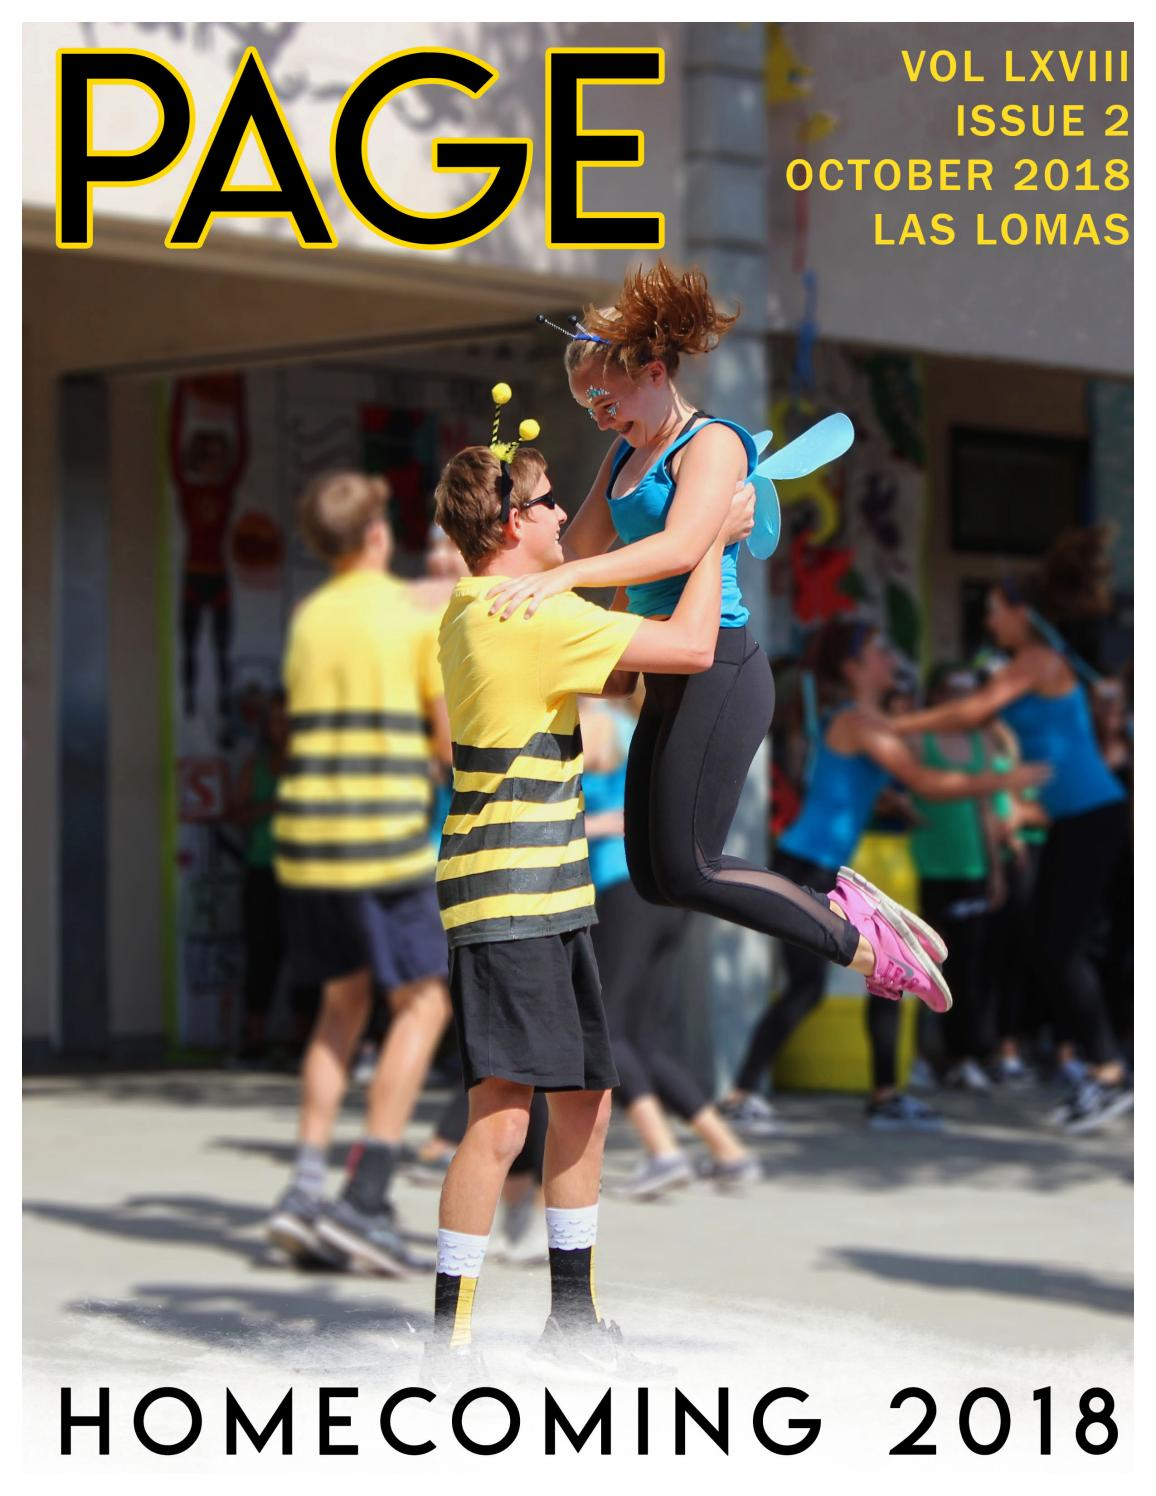 Volume 68 Issue 2 By Las Lomas Page Issuu